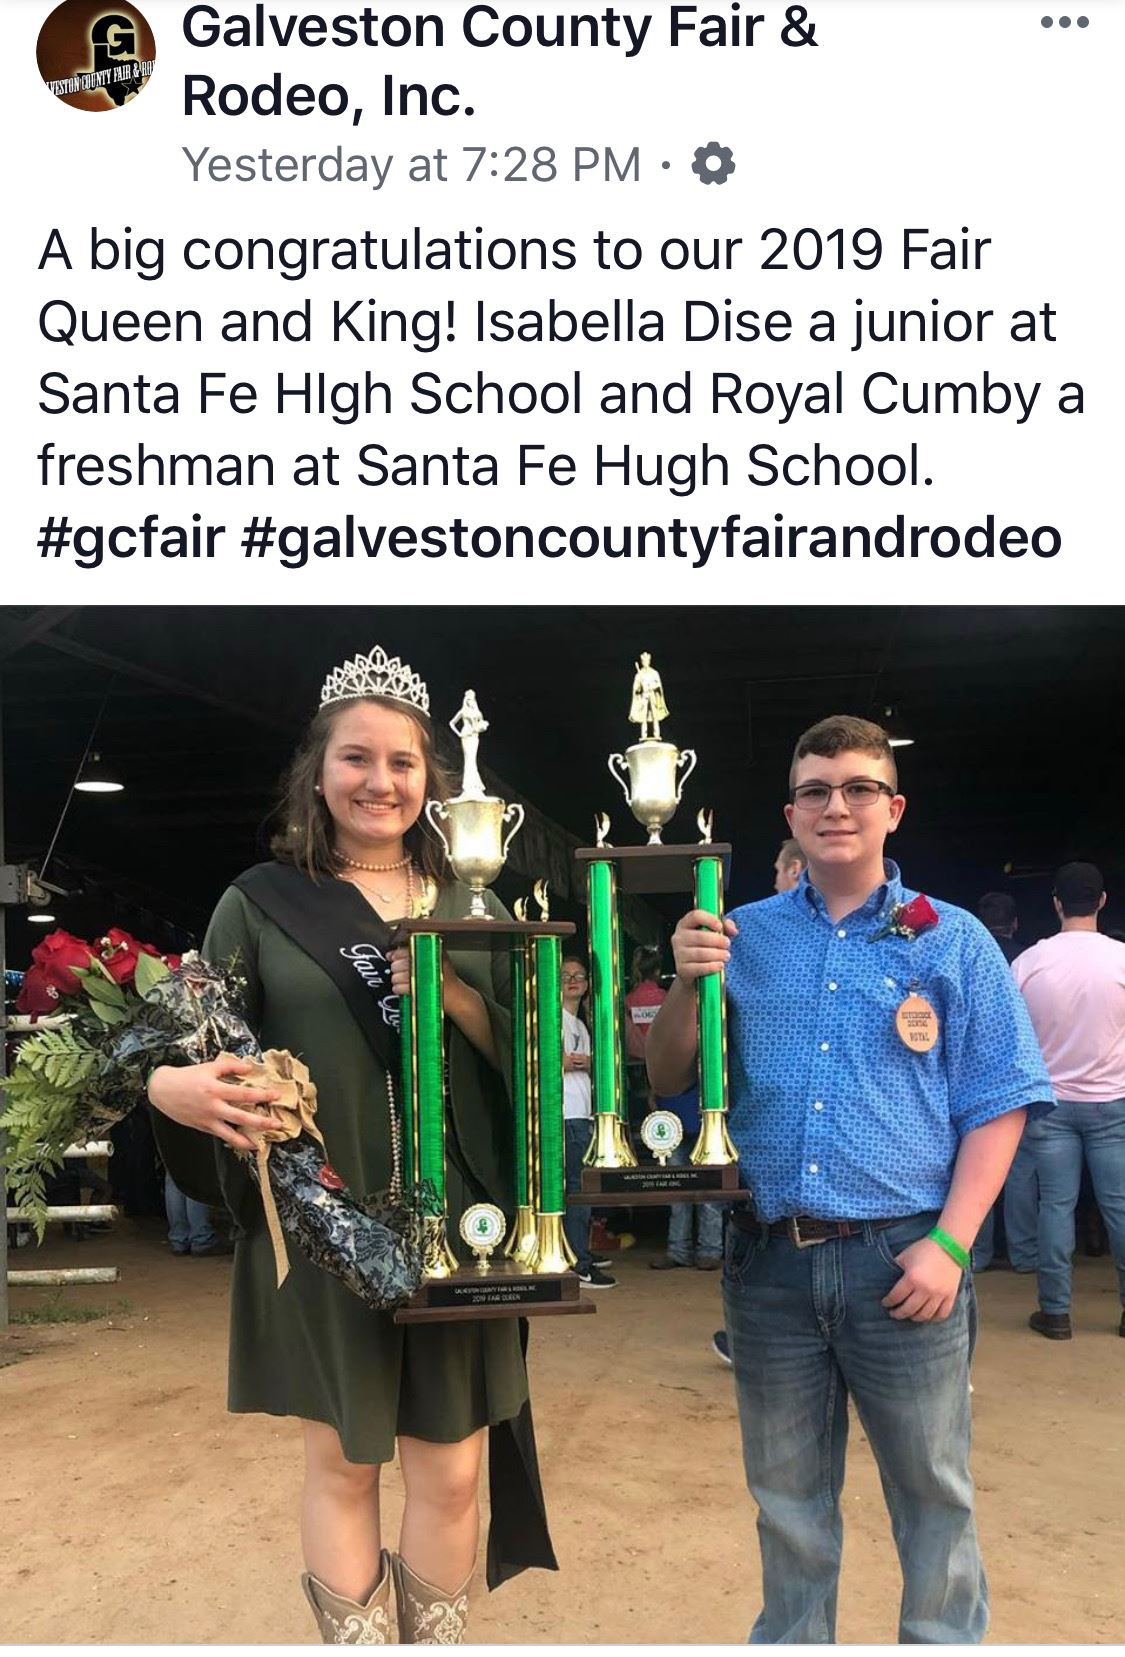 Isabella Dise and Royal Cumby are the 2019 Galveston County Fair and Rodeo Queen and King